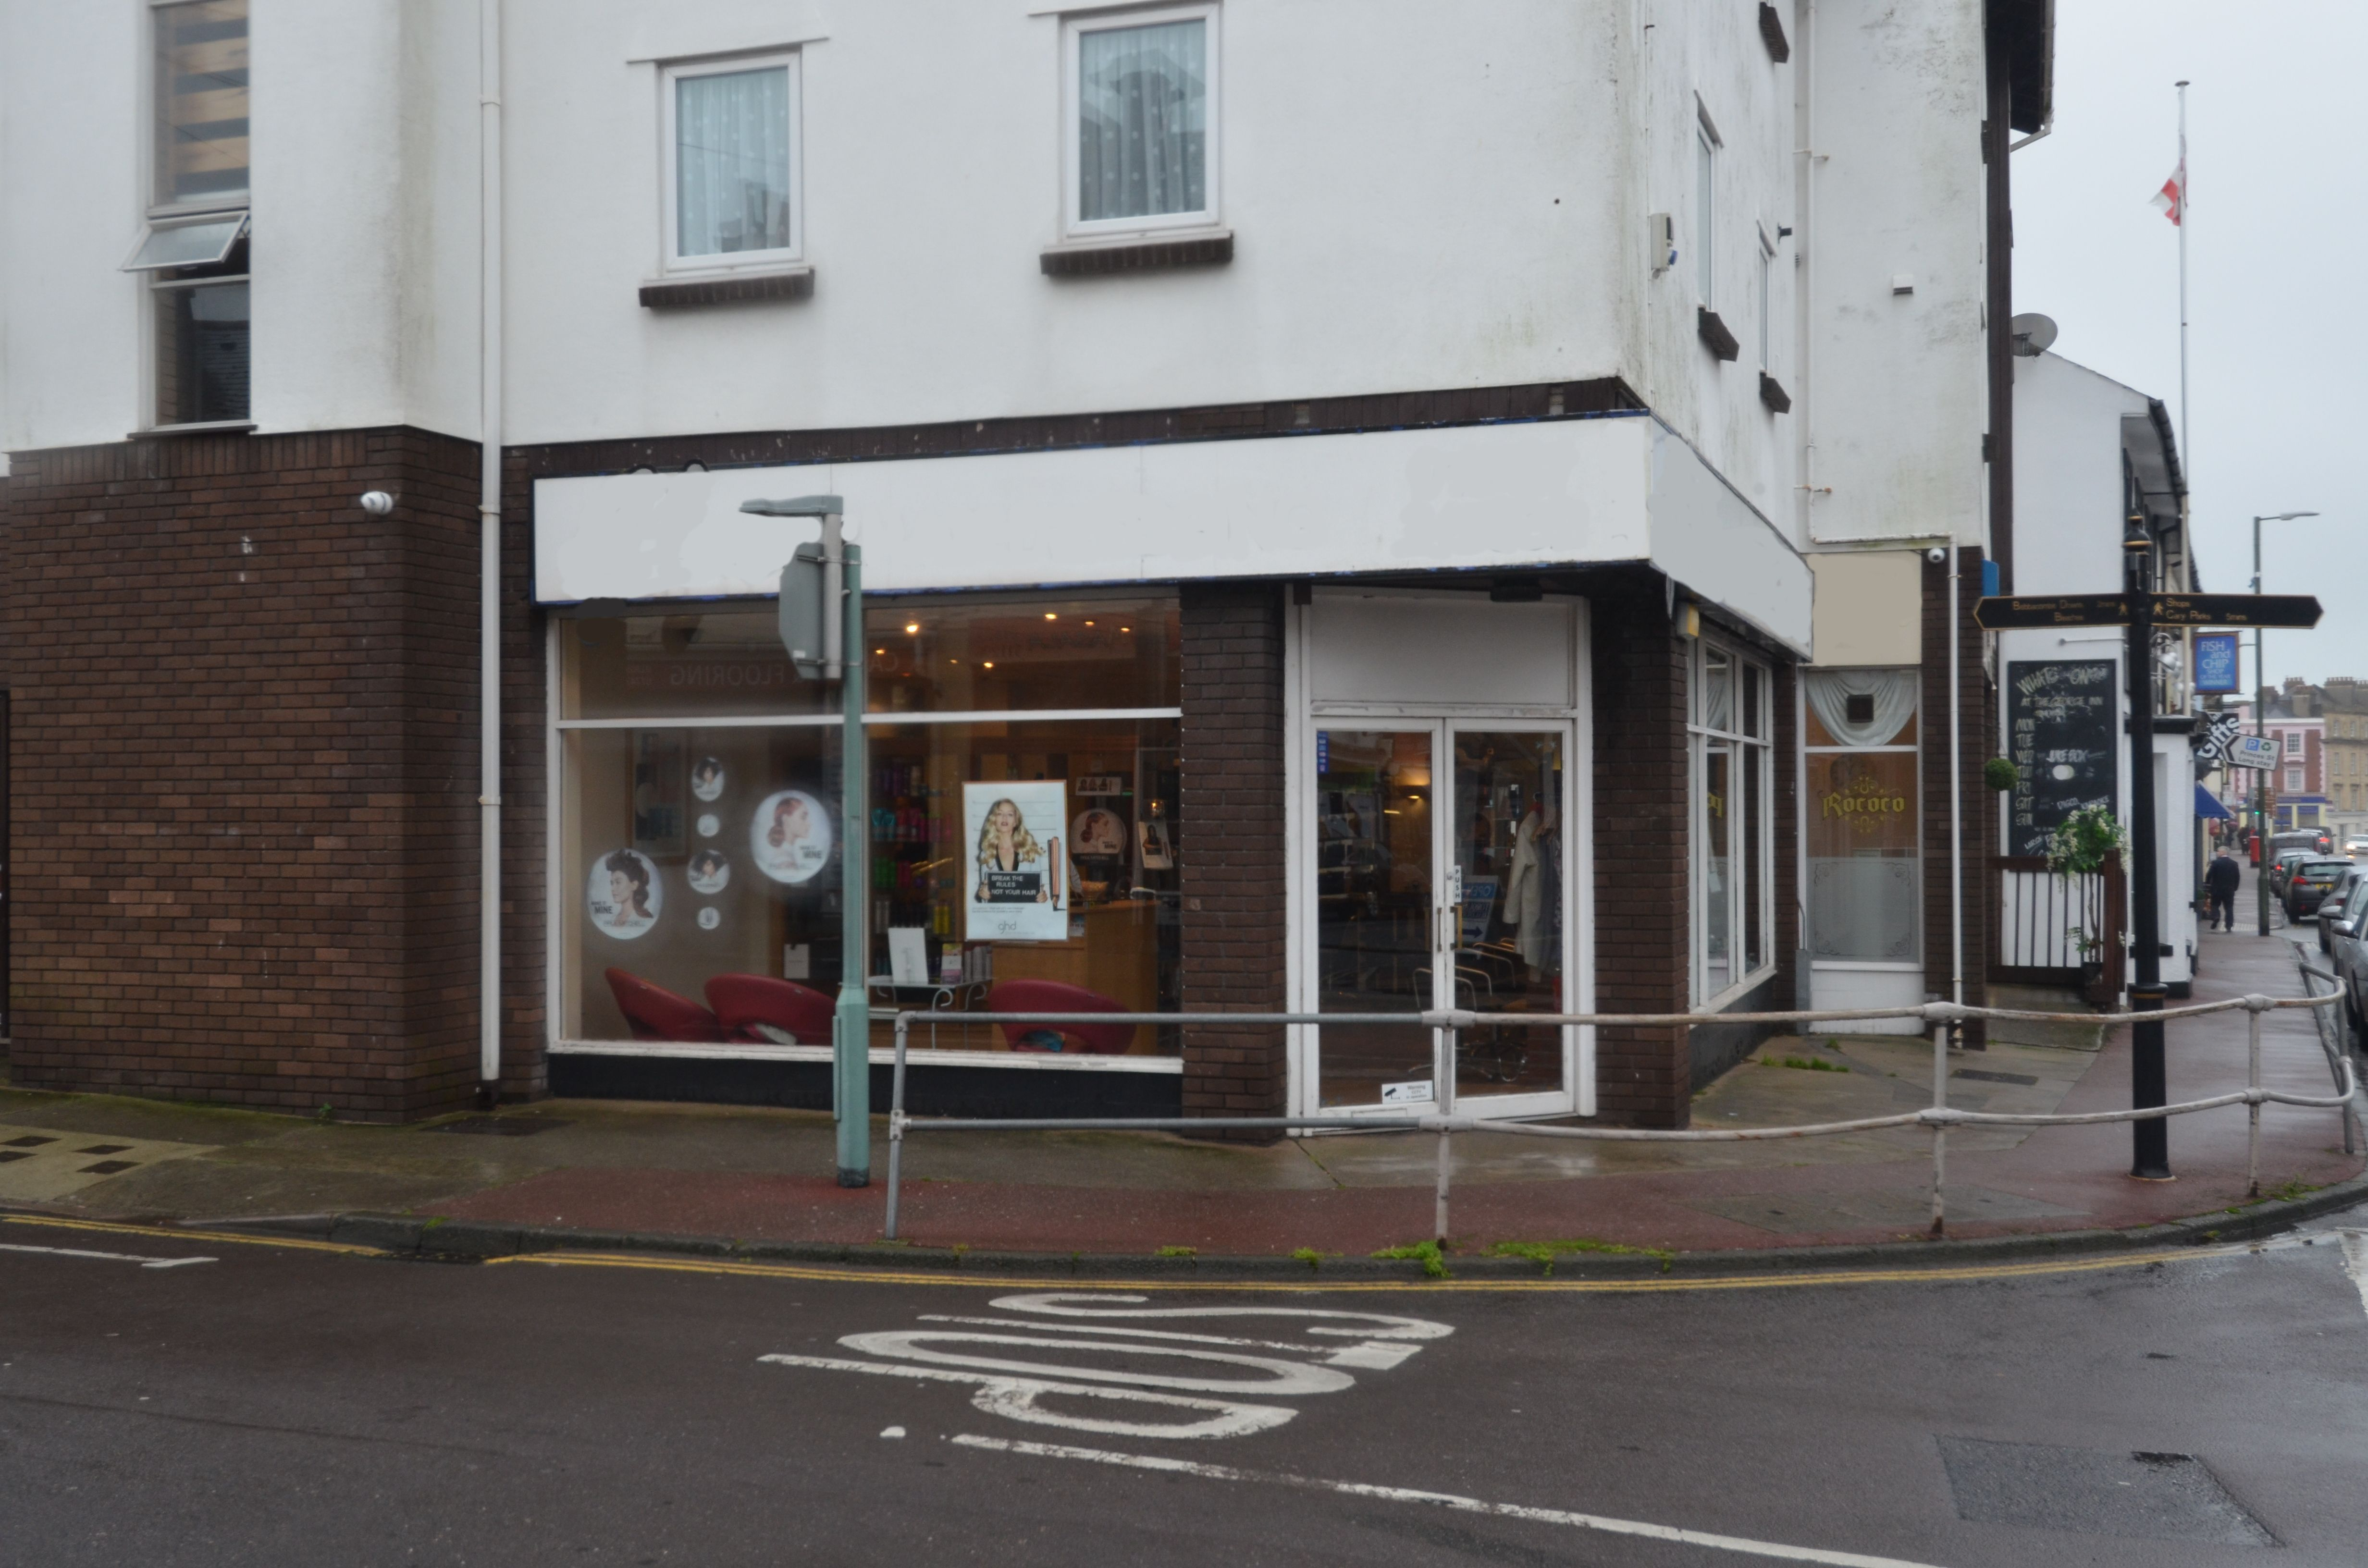 Retail Shop, Babbacombe Road, Torquay, TQ1 3NB